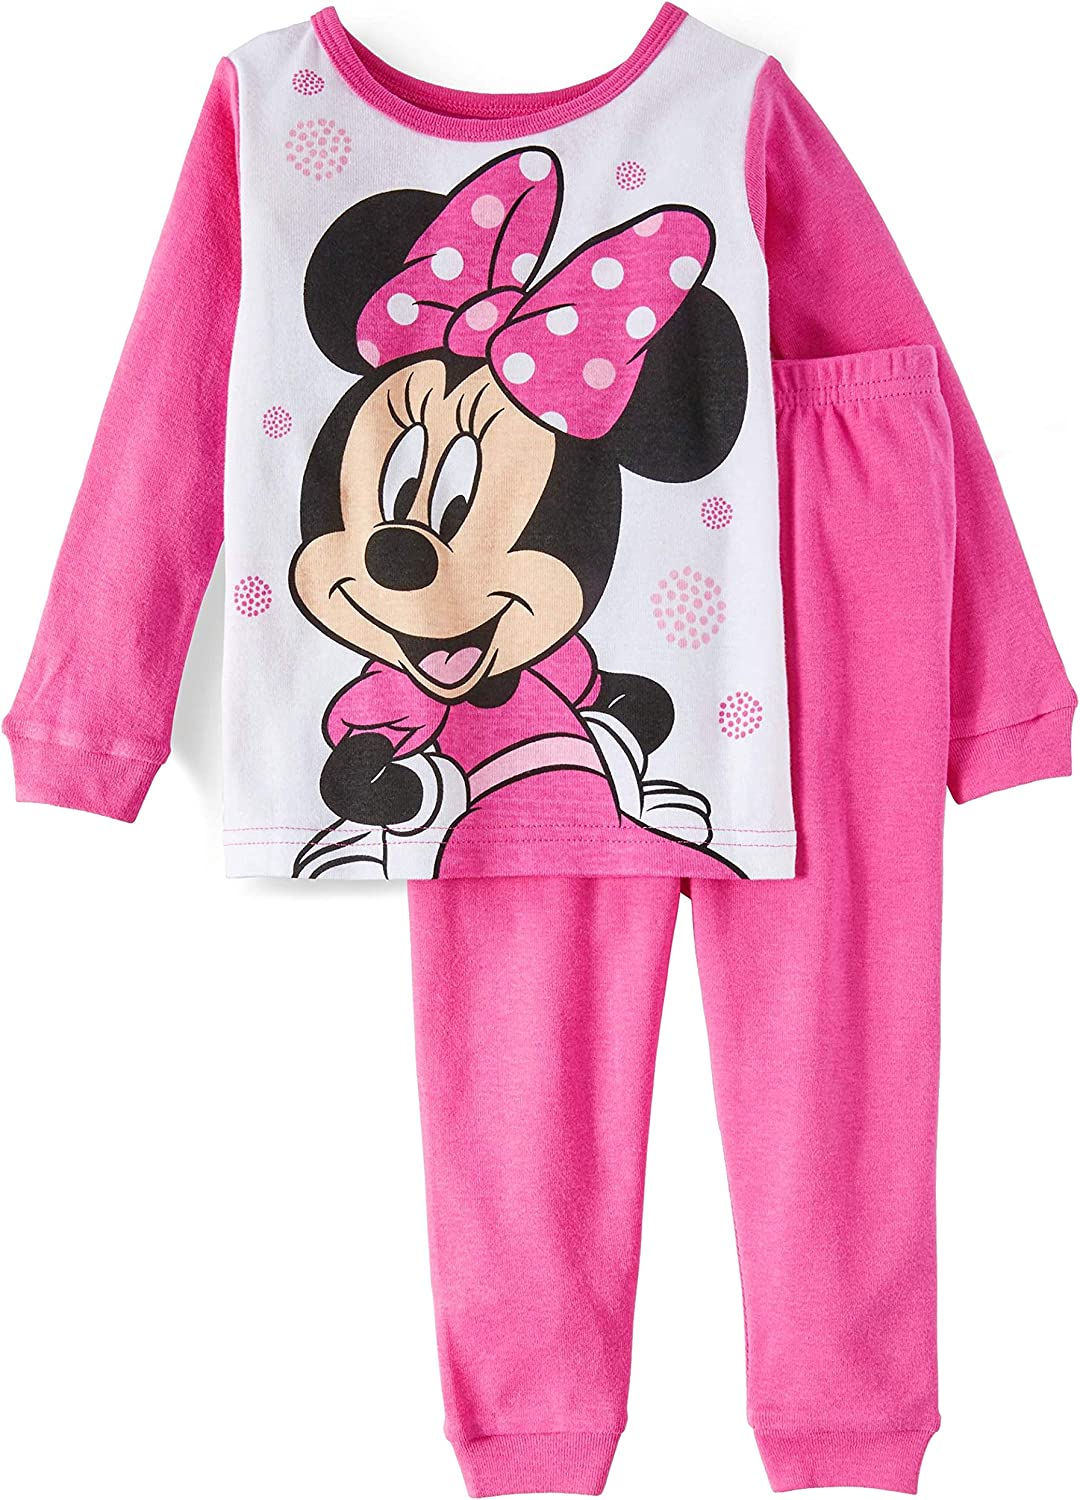 Disney Big Girls 4-pc Princess Pajama Set Pink